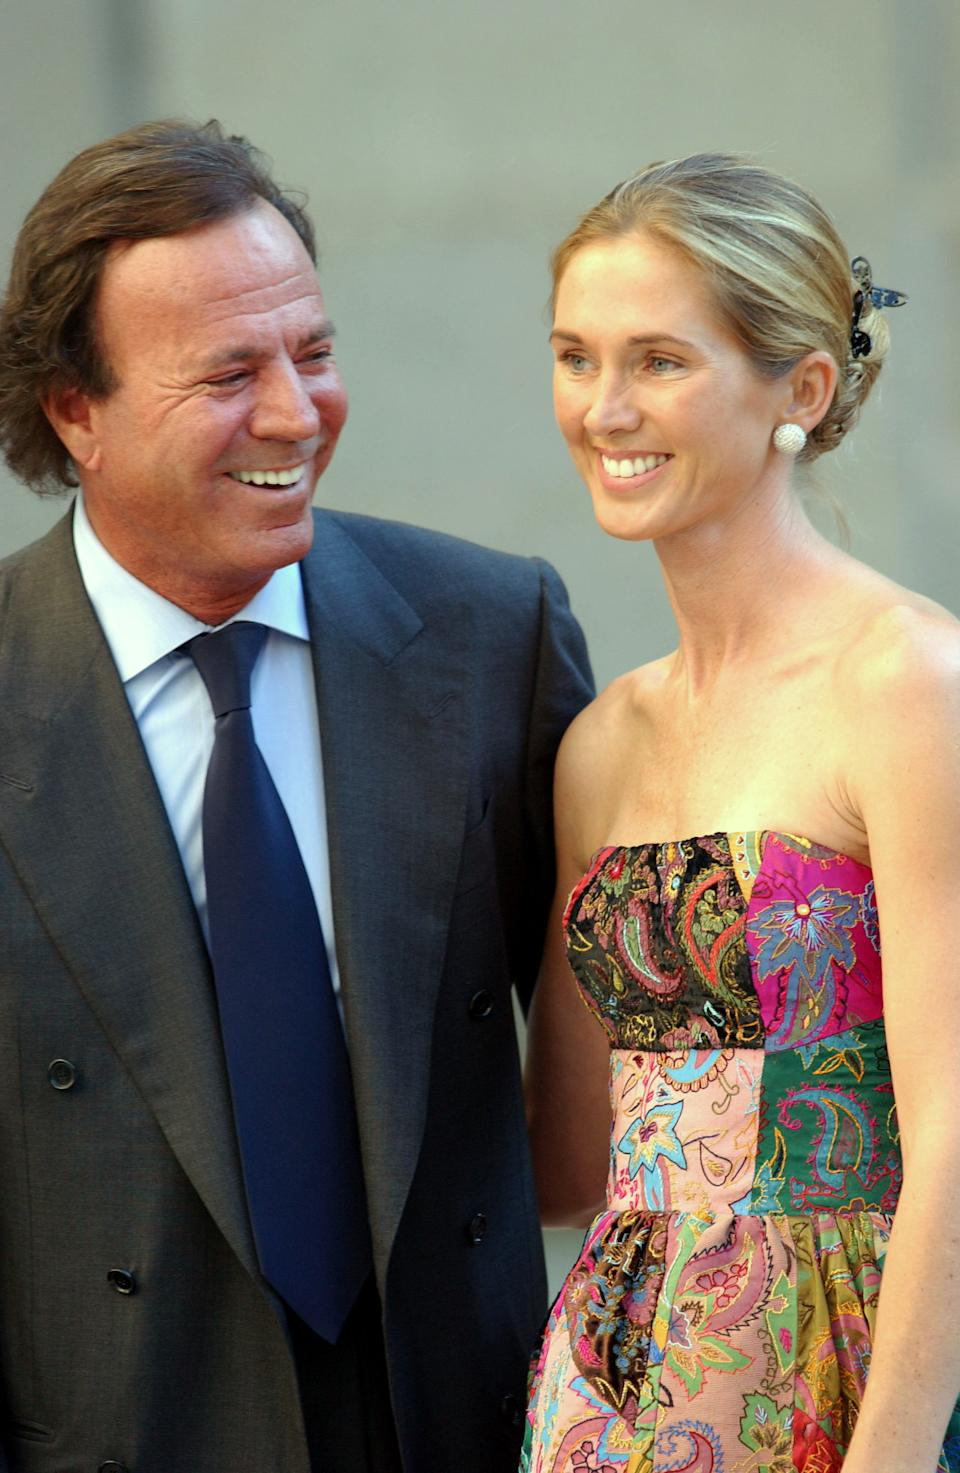 EL ESCORIAL, SPAIN - SEPTEMBER 5:  Spanish singer Julio Iglesias and his wife Miranda arrive at the Chapel of the Monastery of El Escorial for the wedding of Ana Aznar, daughter of Spanish Prime Minister Jose Maria Aznar, to  Alejandro Agag September 05, 2002 in El Escorial, Spain.  (Photo by Carlos Alvarez/Getty Images)